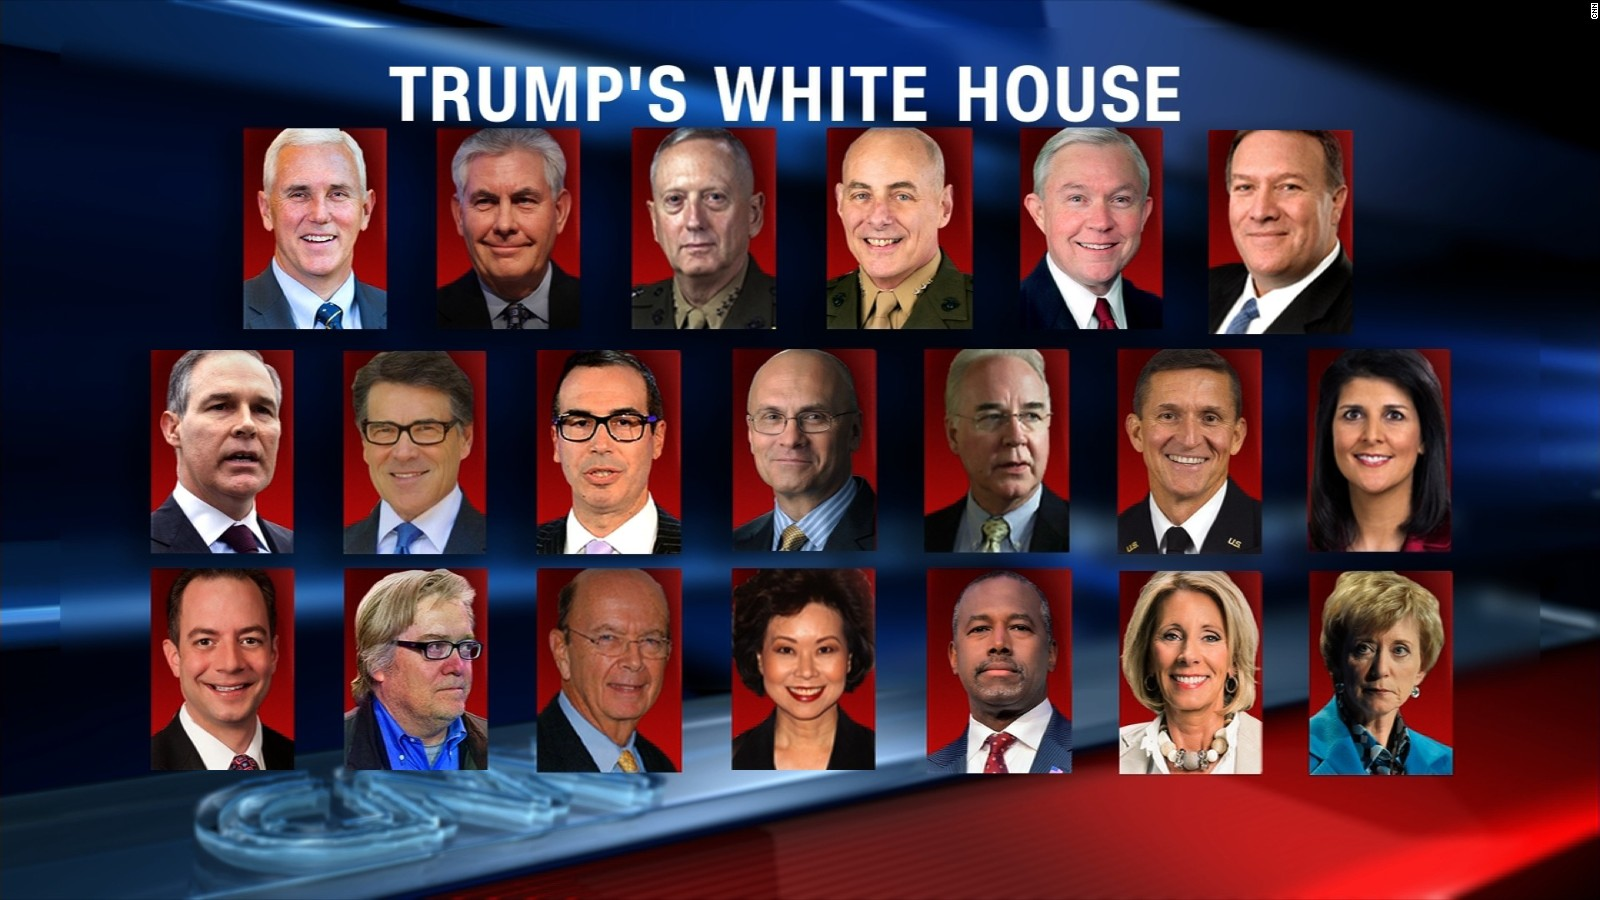 SWAMP THINGS: Net Worth Of Trump And His Cabinet Now Greater Than ...